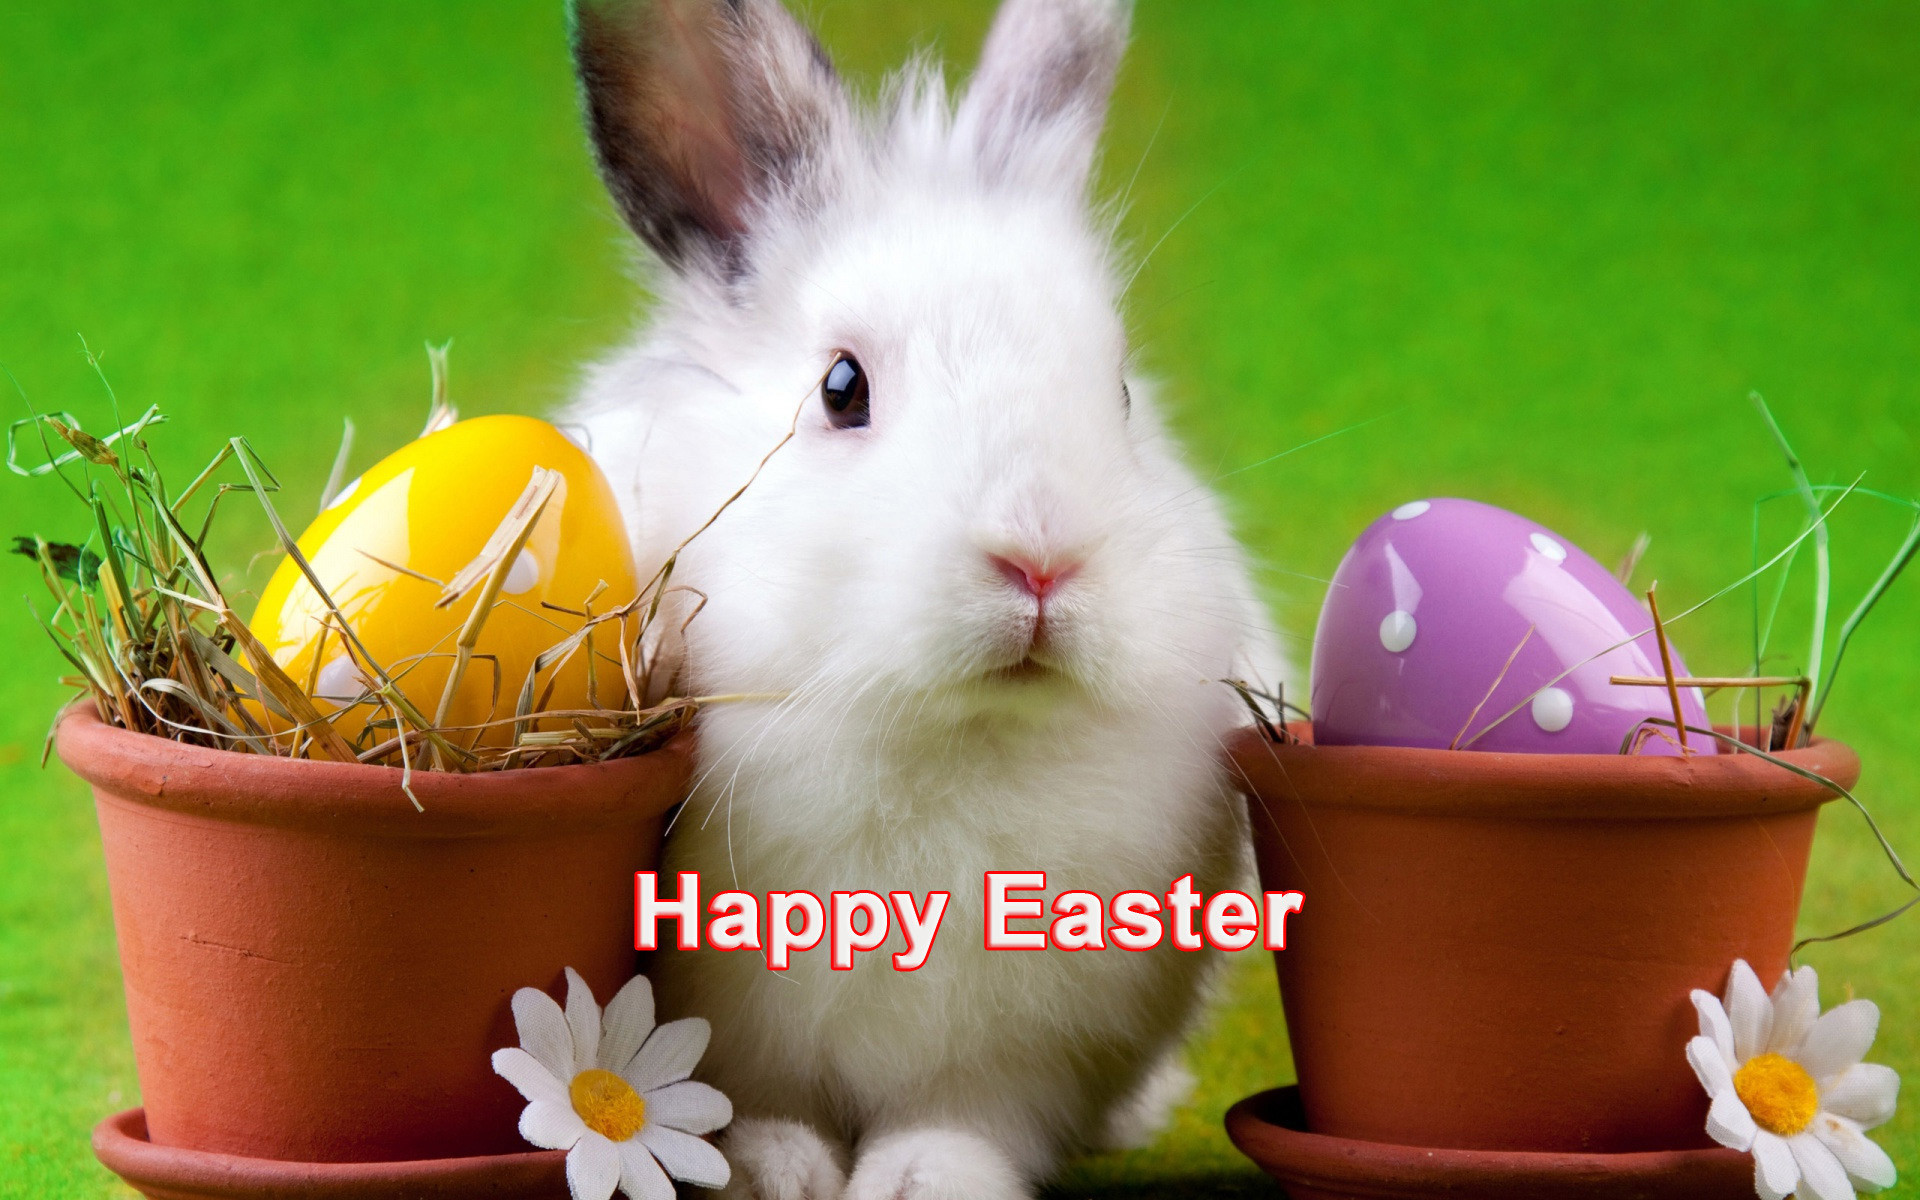 1920x1200 Happy Easter Cute White Bunny Hd Desktop Wallpapers Images